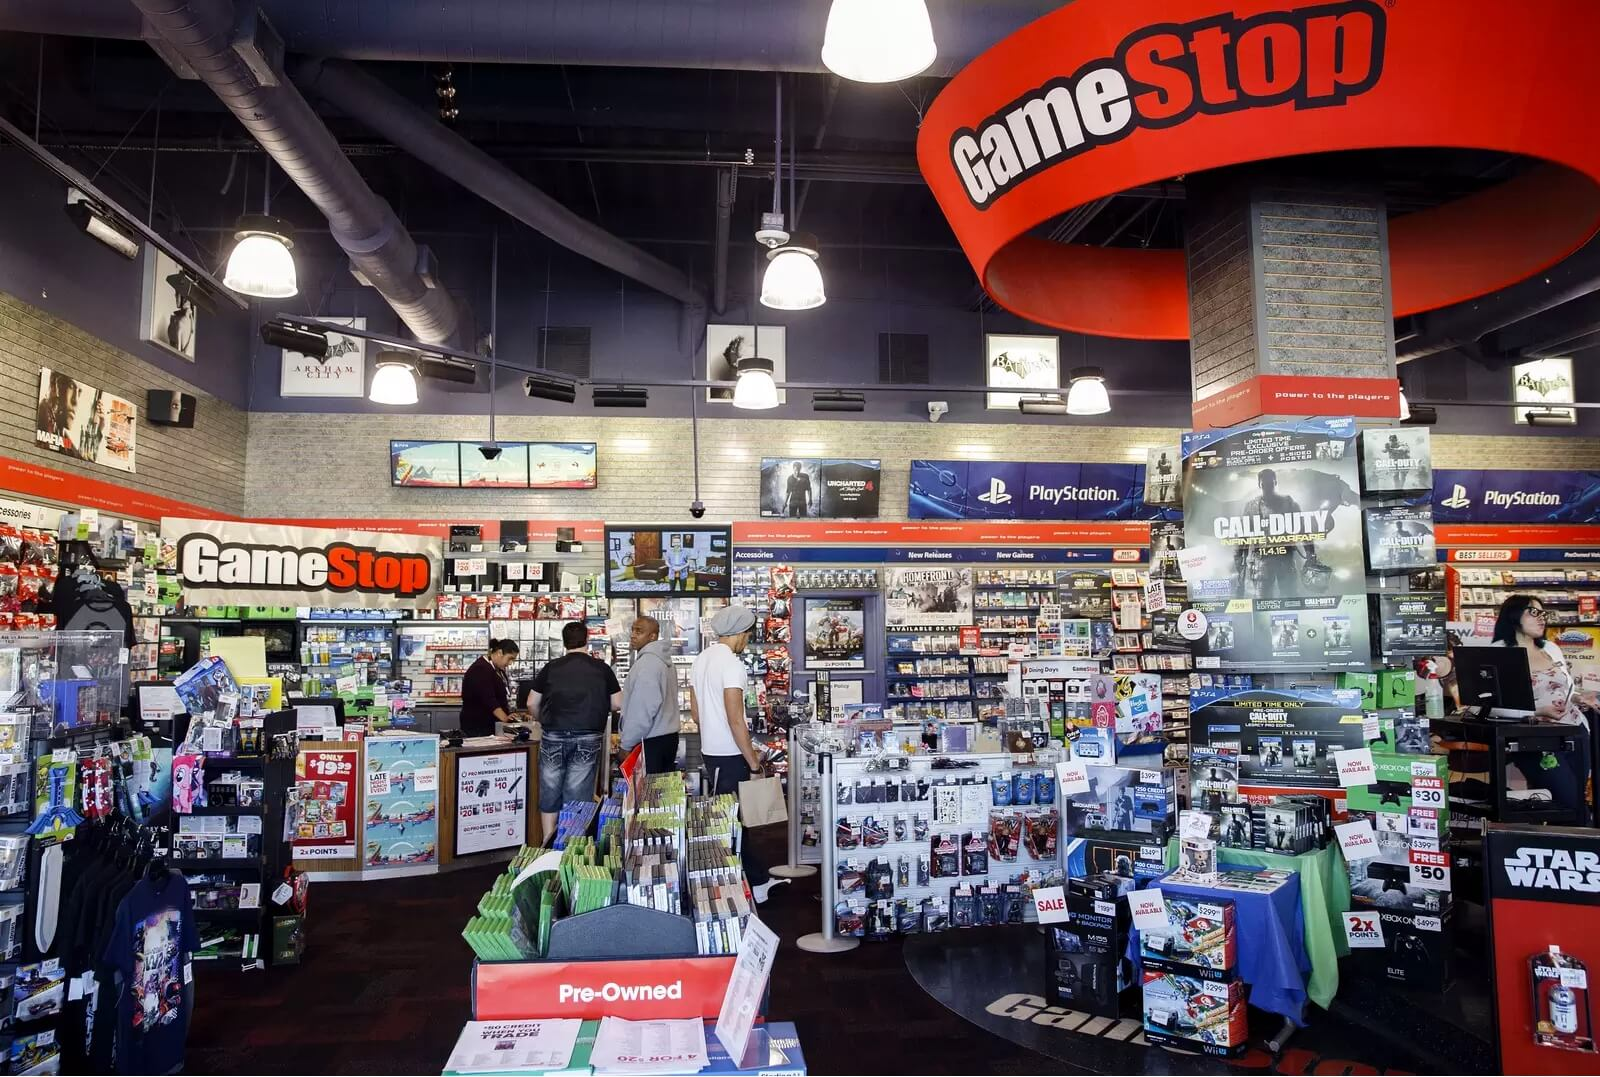 Falling console sales force GameStop into cost-cutting measures